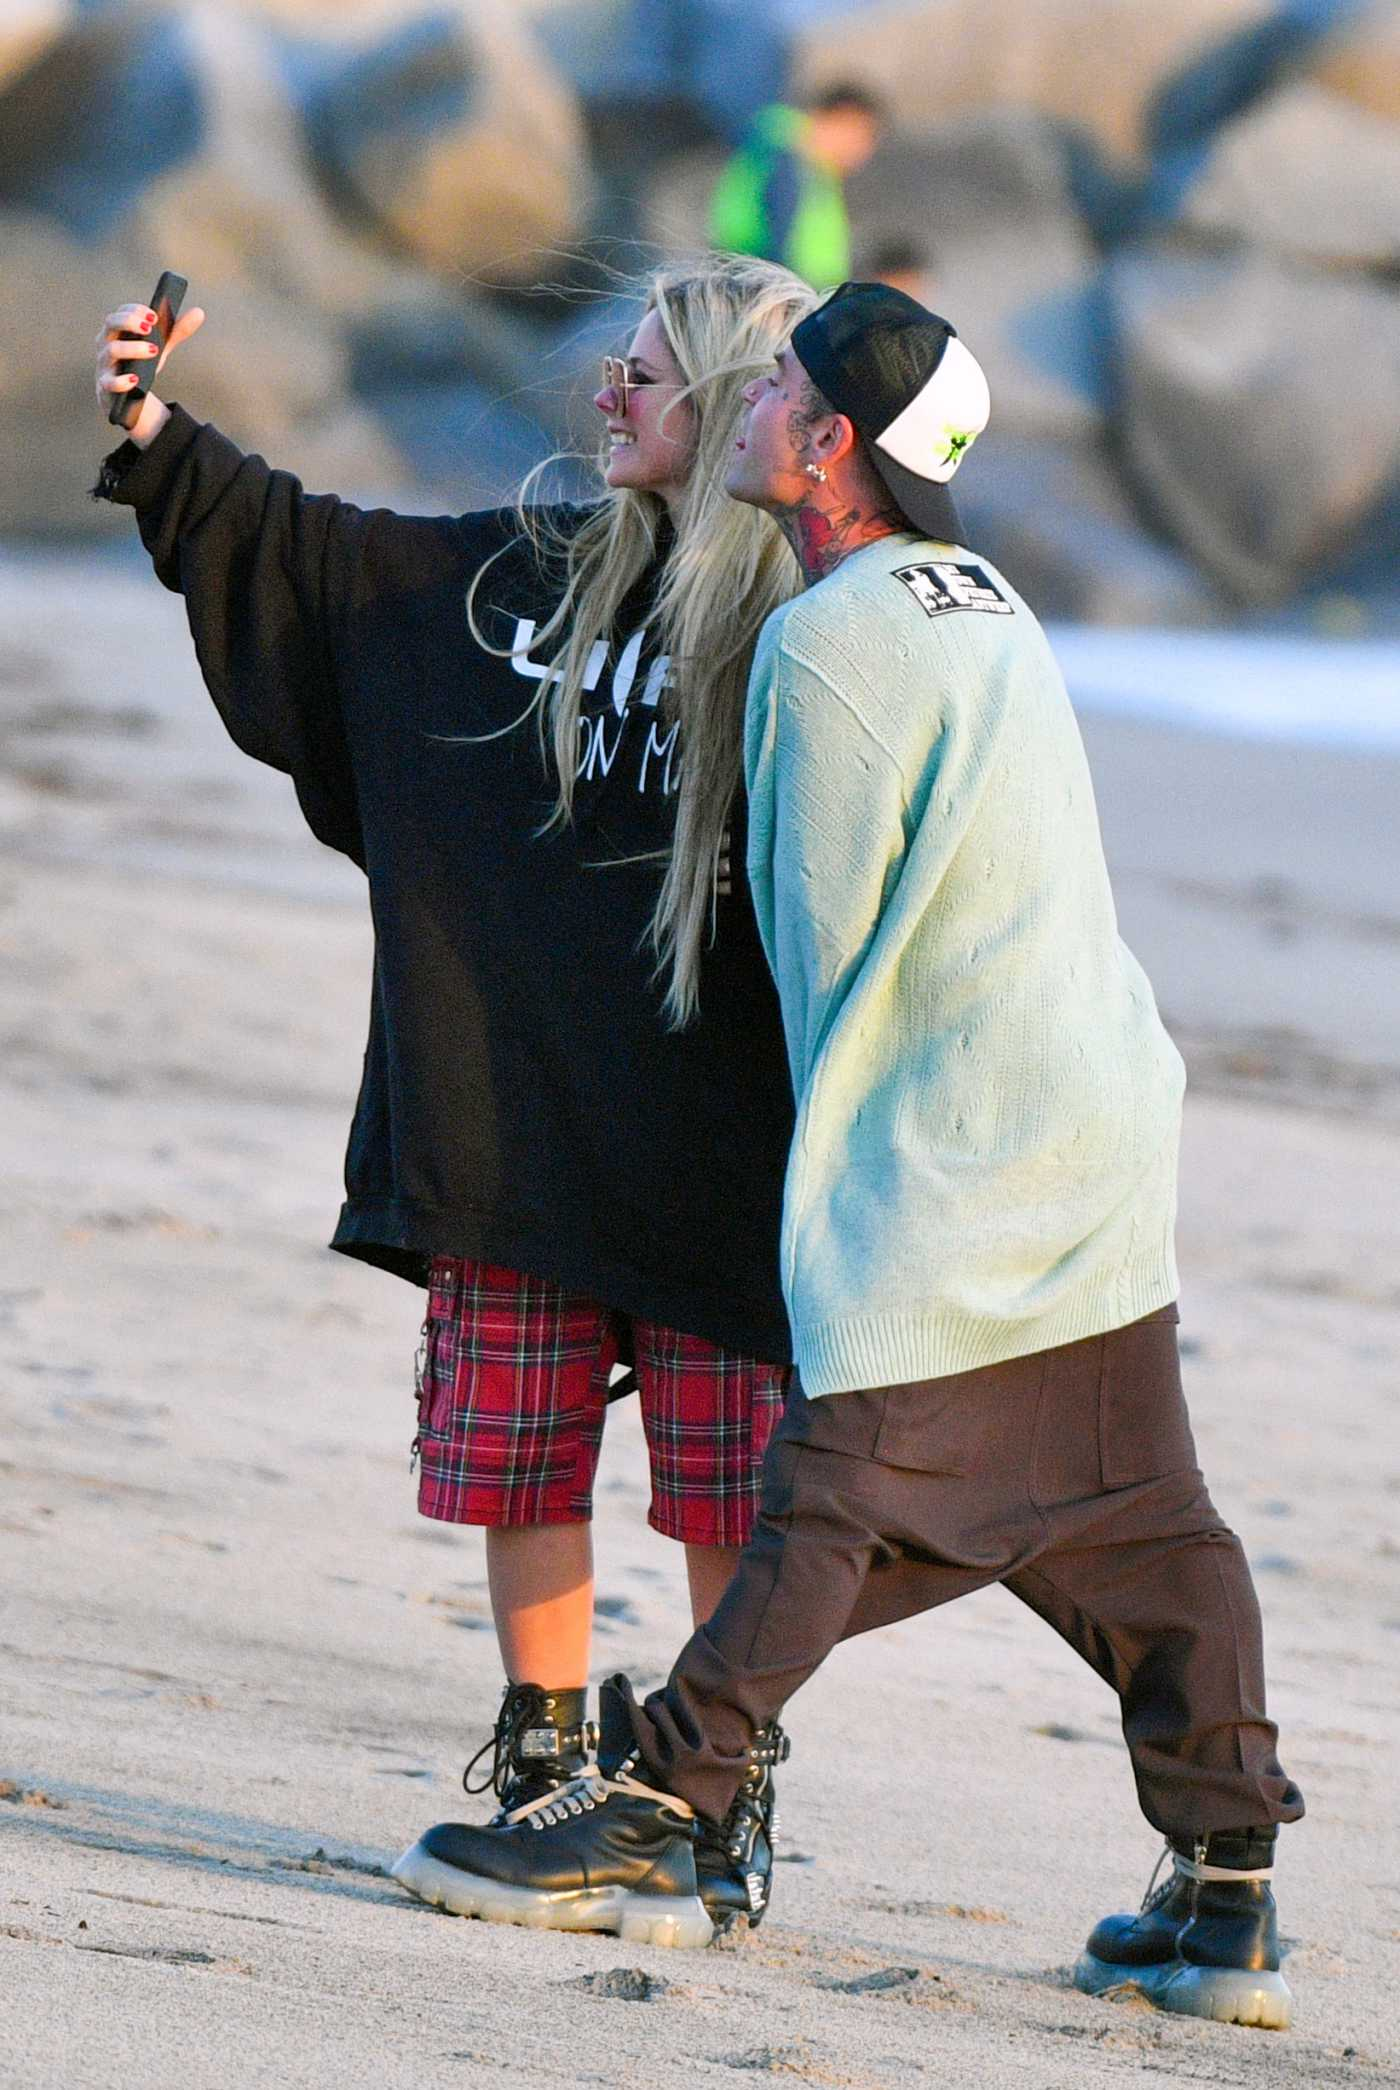 Avril Lavigne in Oversized Black Sweatshirt Was Seen Out with Mod Sun on the Beach in Santa Monica 03/10/2021